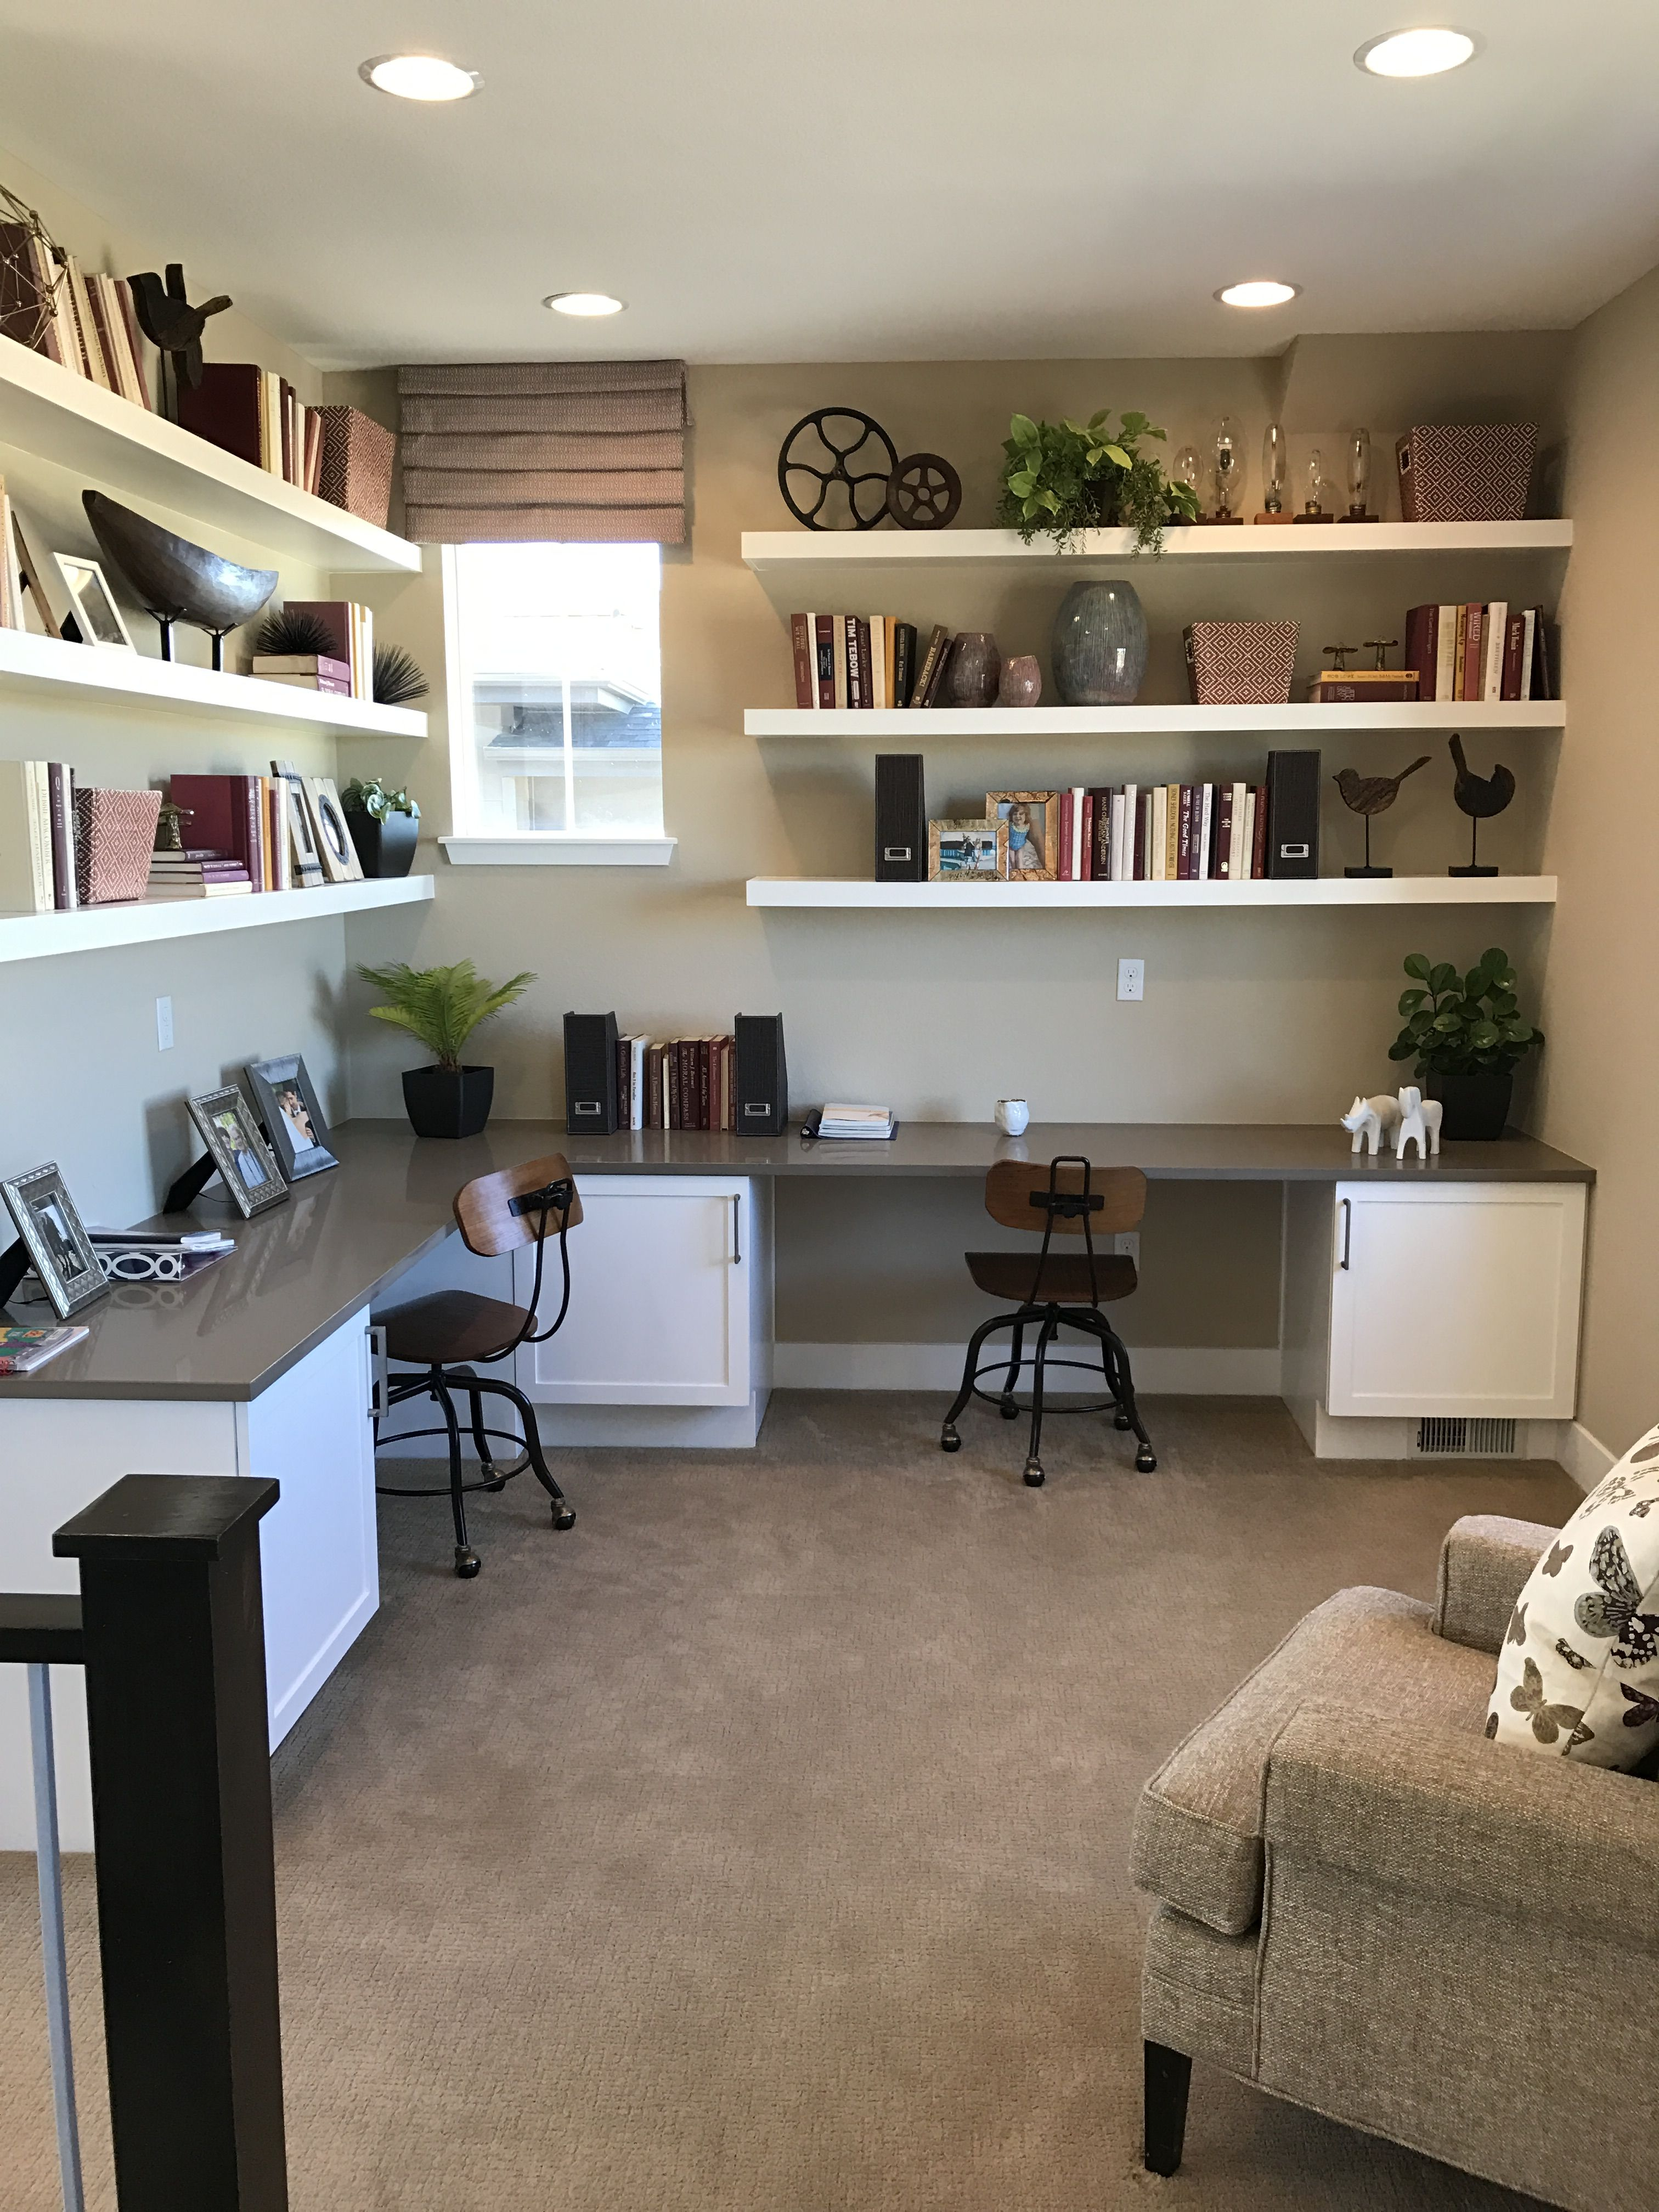 Basement Study Room: Pin By LaUra On Model Home Tour